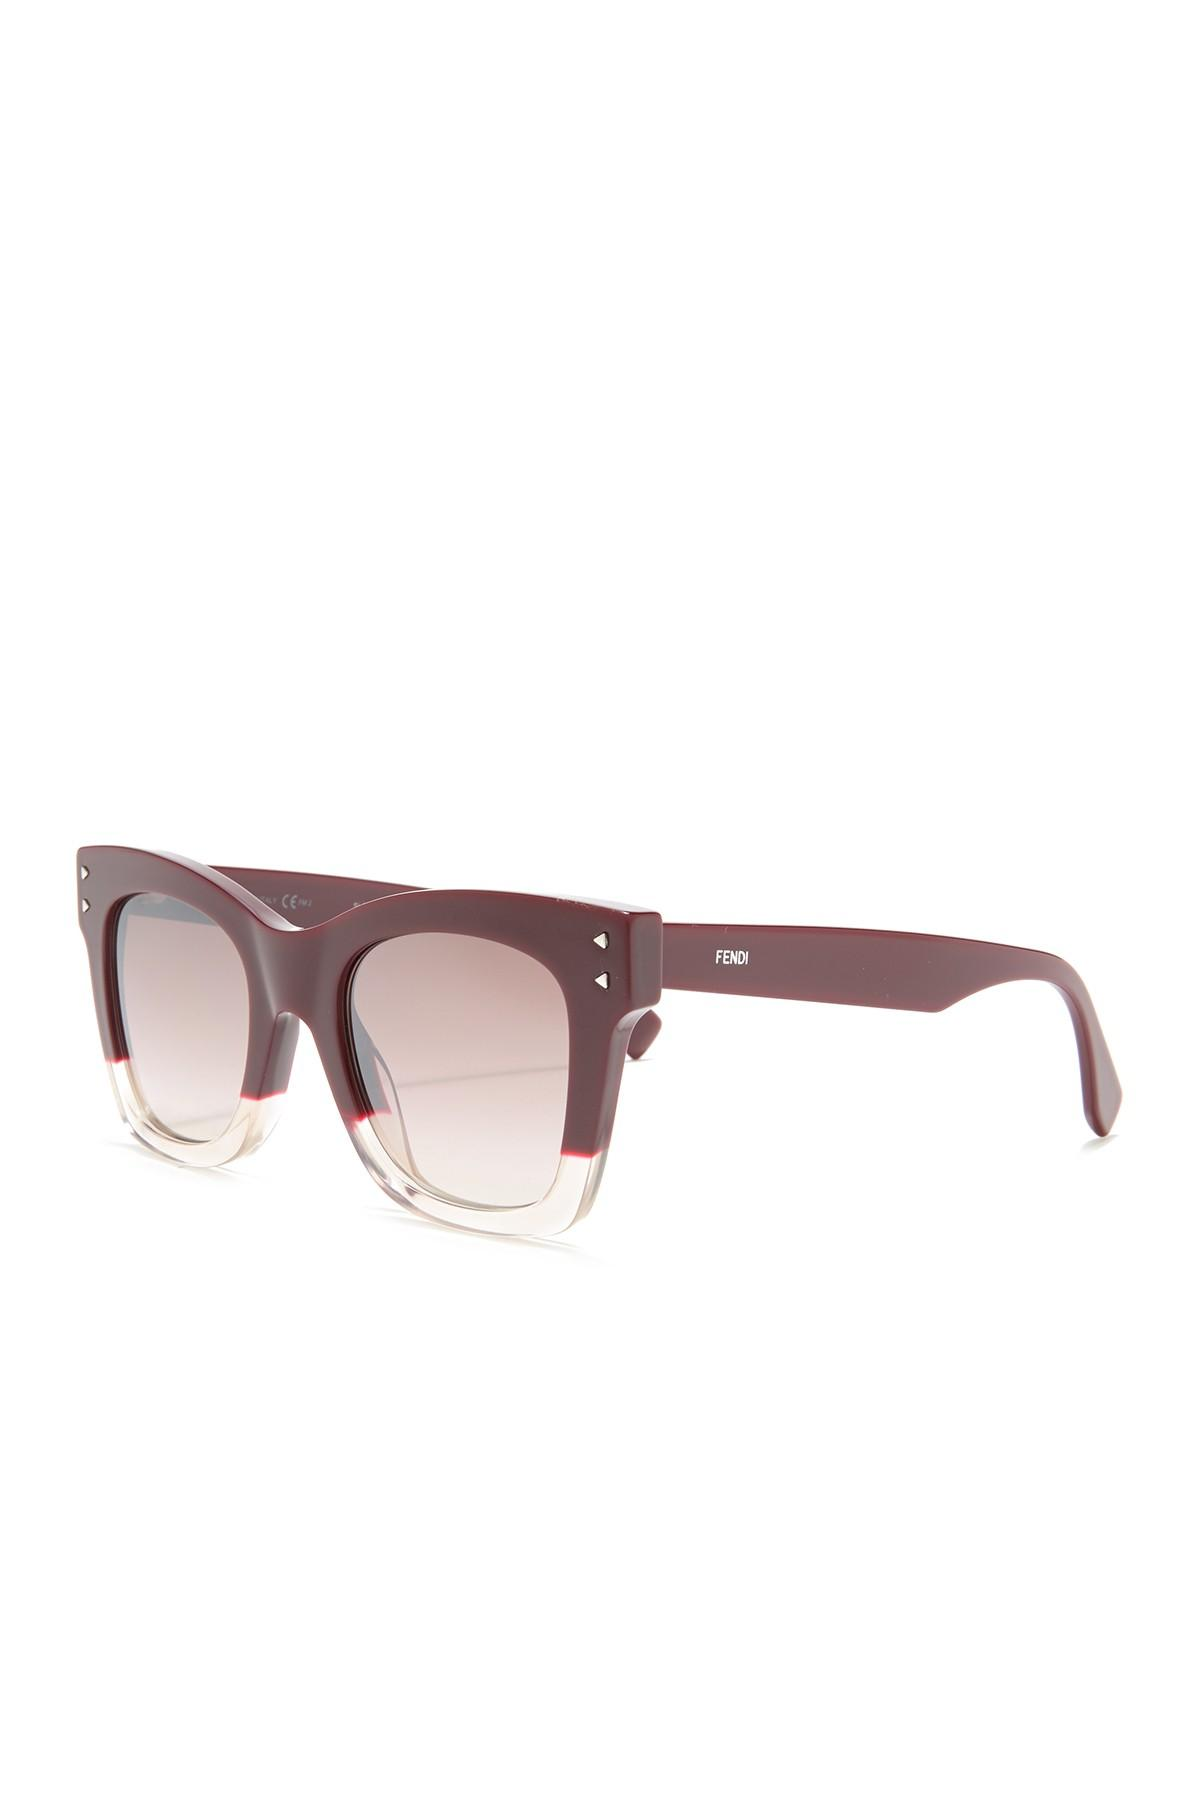 36d213527740 Fendi - Multicolor Square 49mm Sunglasses - Lyst. View fullscreen